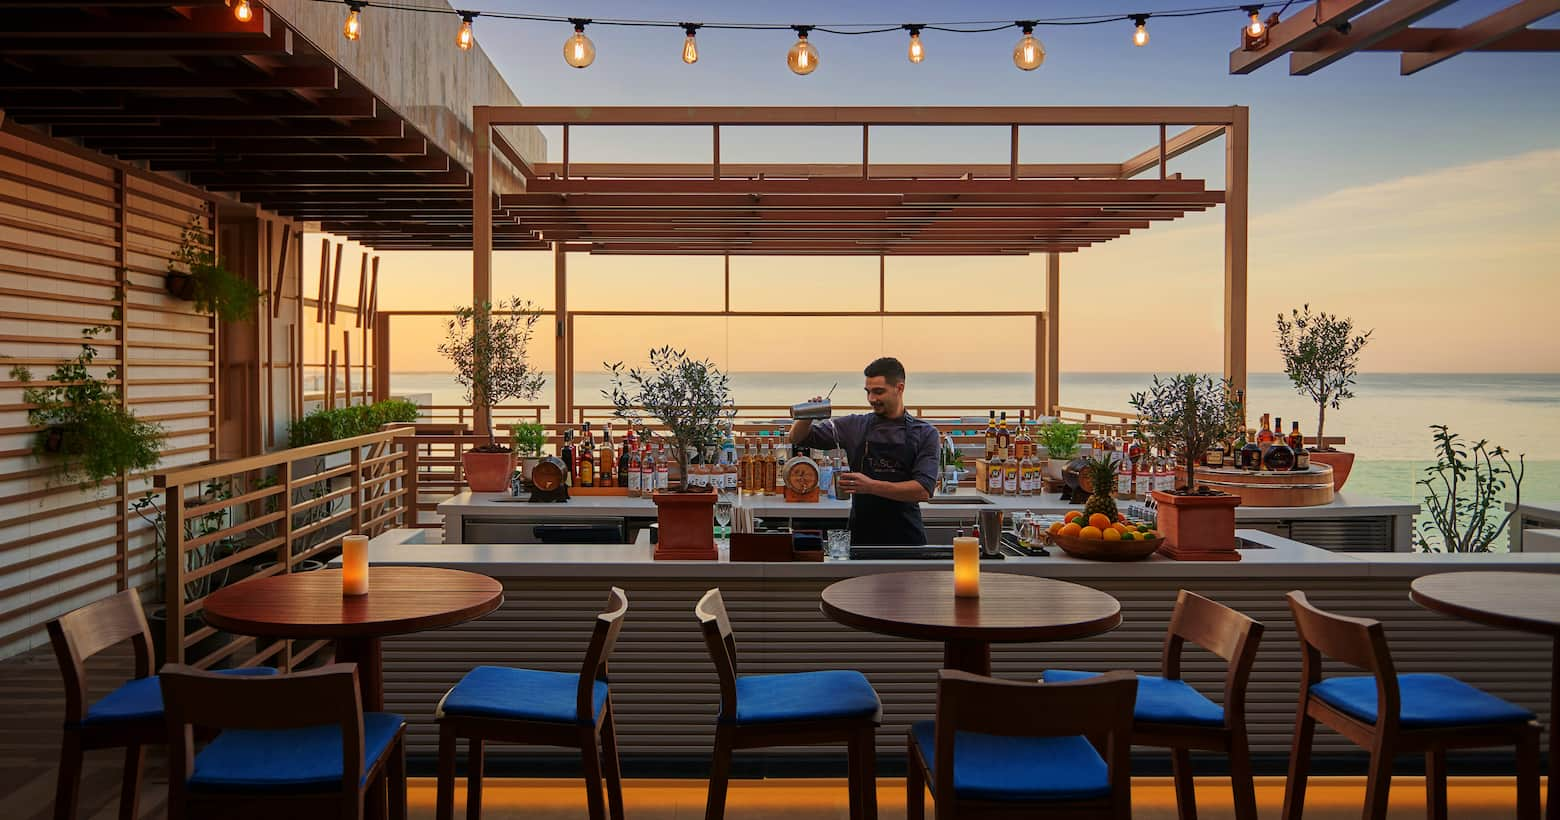 tasca infinity bar with sunset background